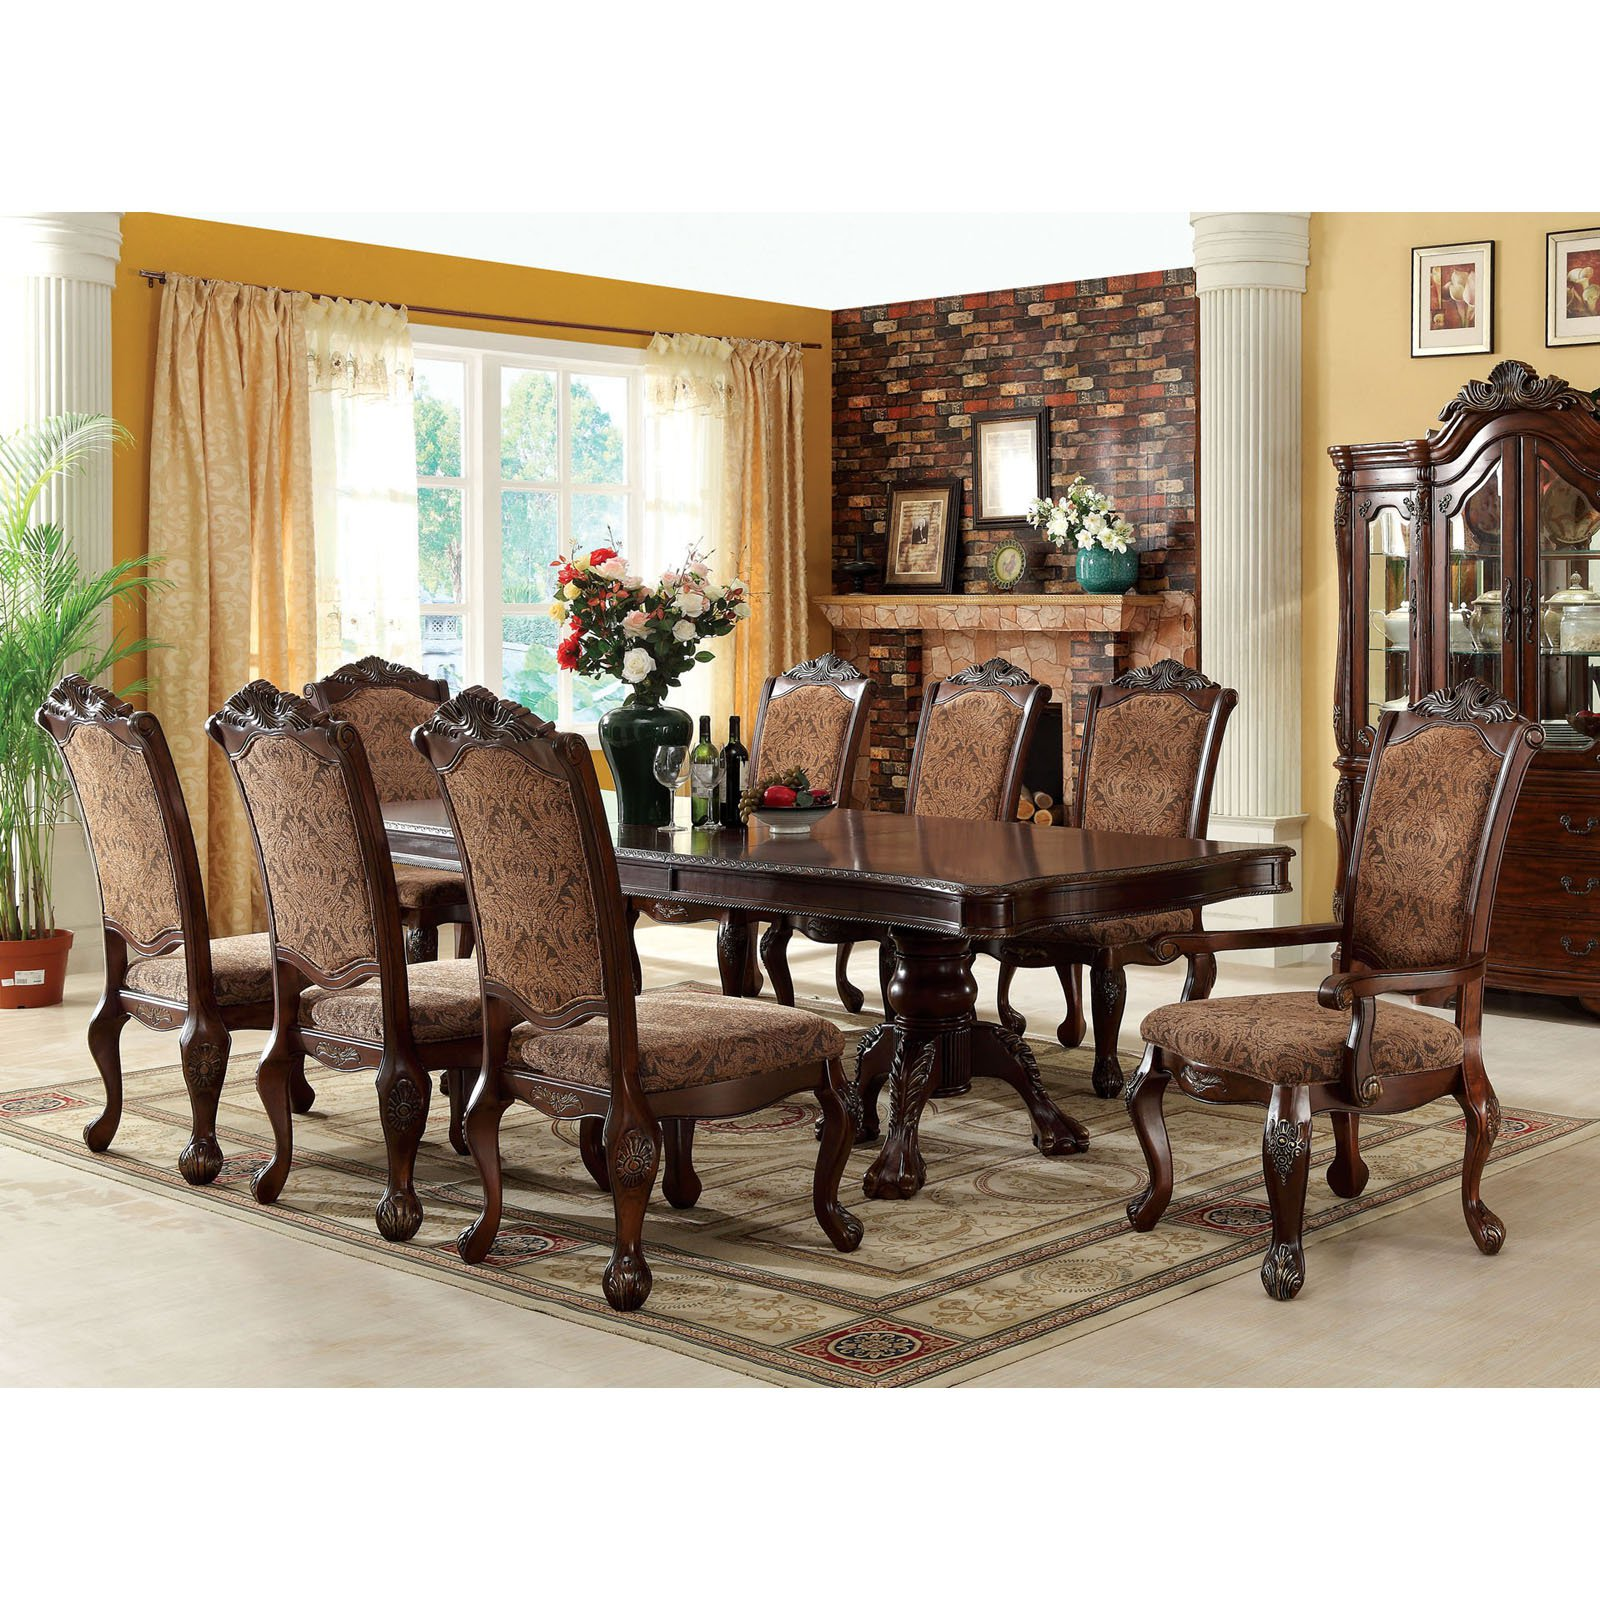 Furniture of America Guillem 9 Piece Traditional Dining Set